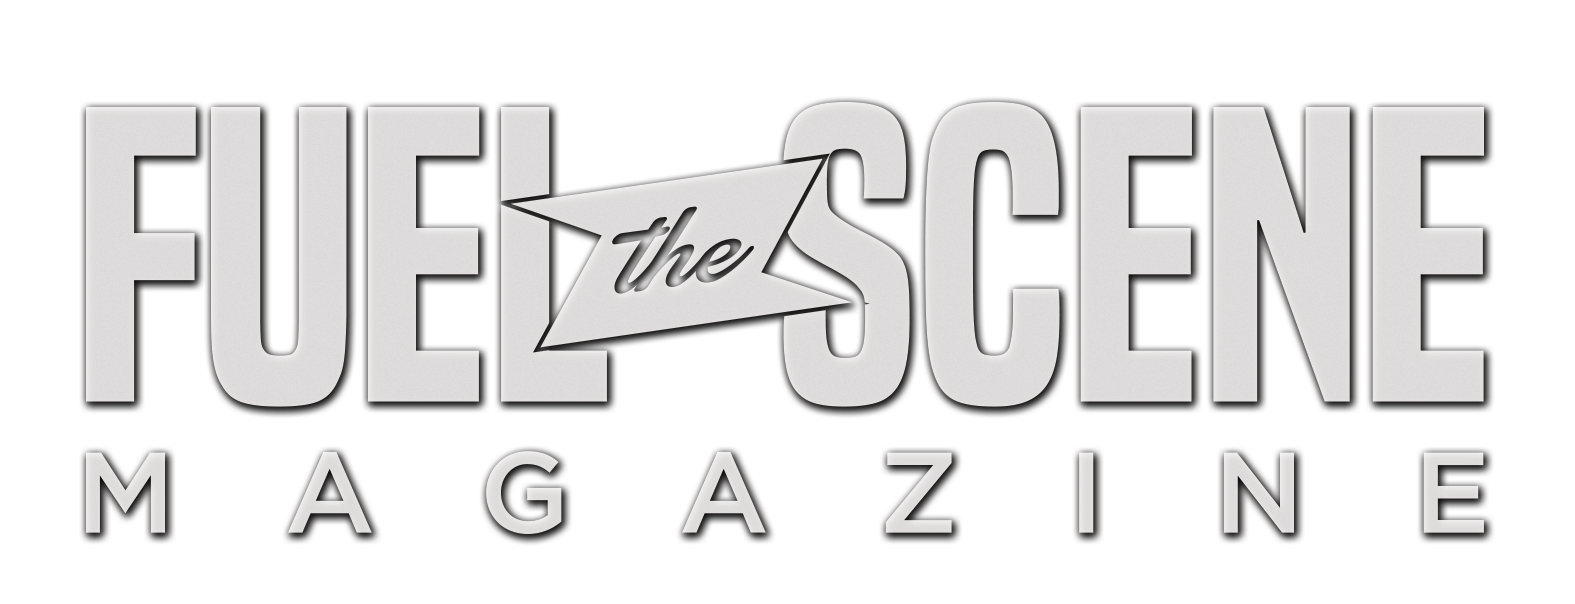 Fuel The Scene Magazine